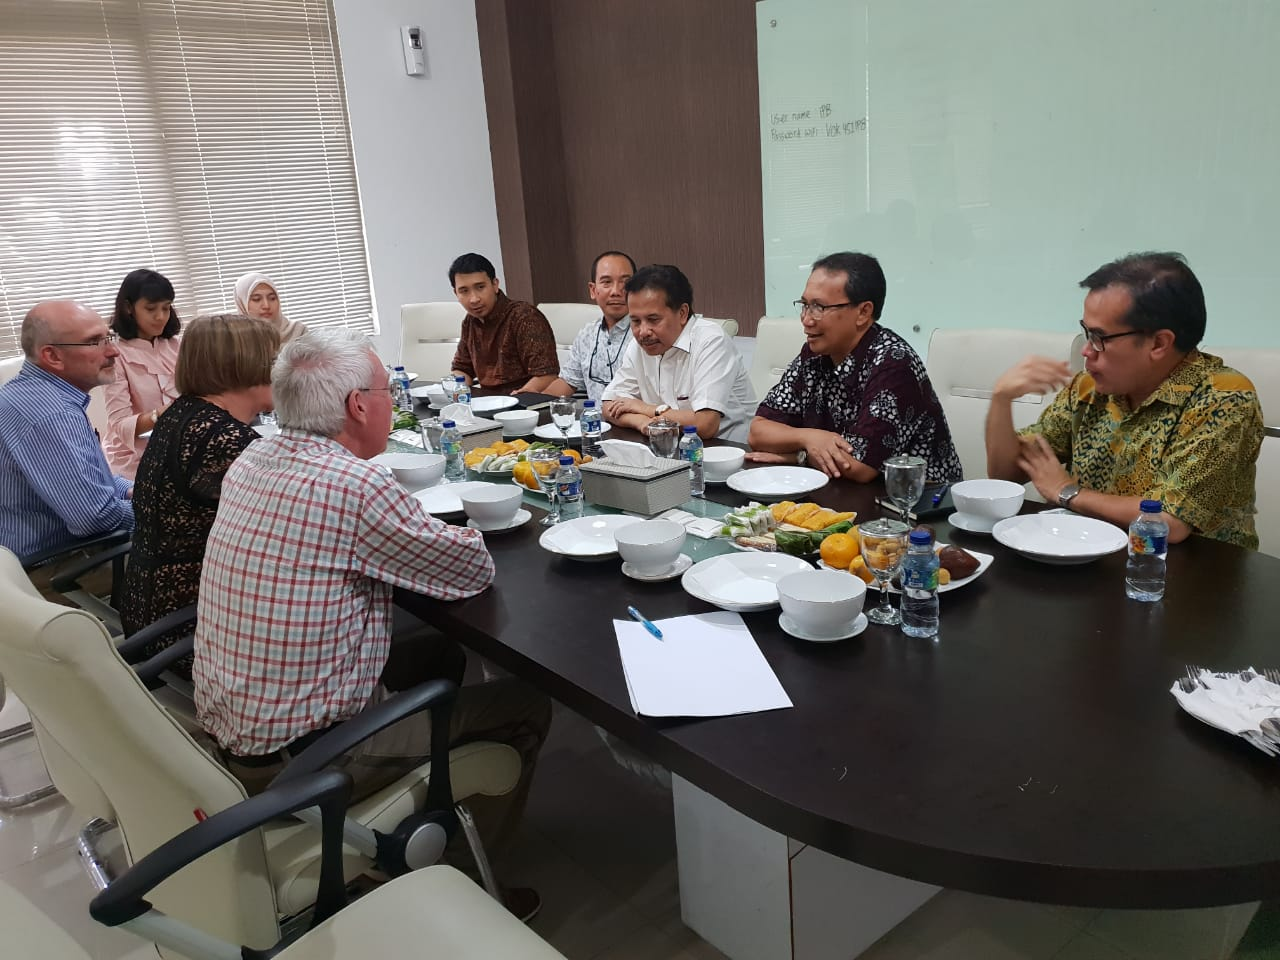 University of New England delegation VC Professor Annabelle Duncan and PhD.I program coordinator Dr Philip Thomas discussing current and future collaborations with Bogor Agricultural University representatives Professor Iskandar Z. Siregar (Director for International Program), Professor Agus Purwito (Vice Rector for Resources, Planning & Finance), Dr Arief Daryanto (Dean - School of Vocational Sciences), Dr Wawan Oktariza (Vice Dean), and Mr. Adhitya Rahmana.